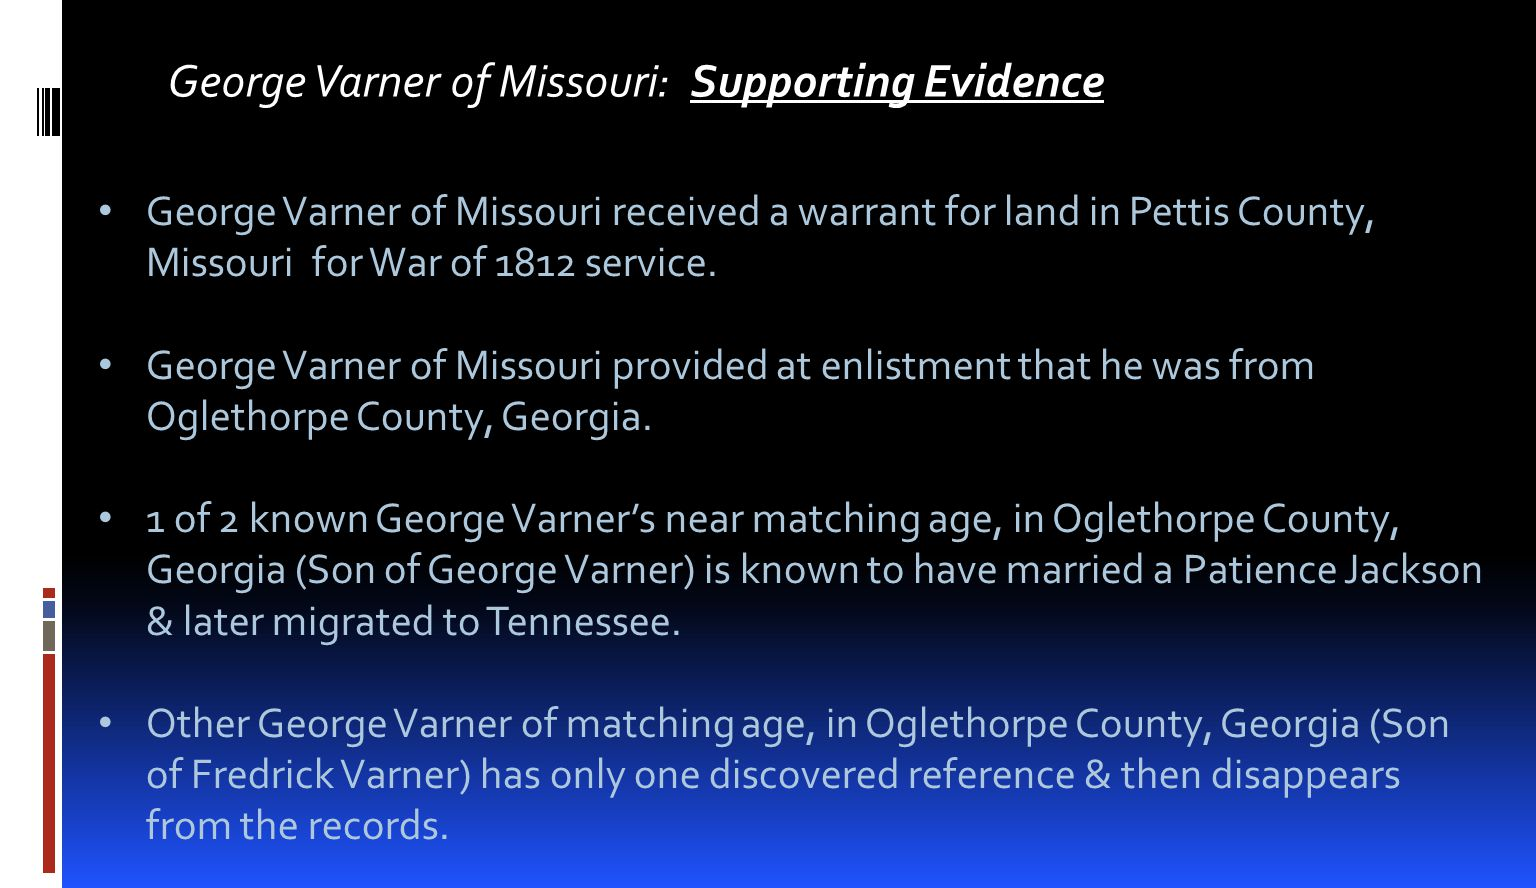 George Varner of Missouri: Conflicting Evidence In the 1850 census George Varner is listed as born in Virginia